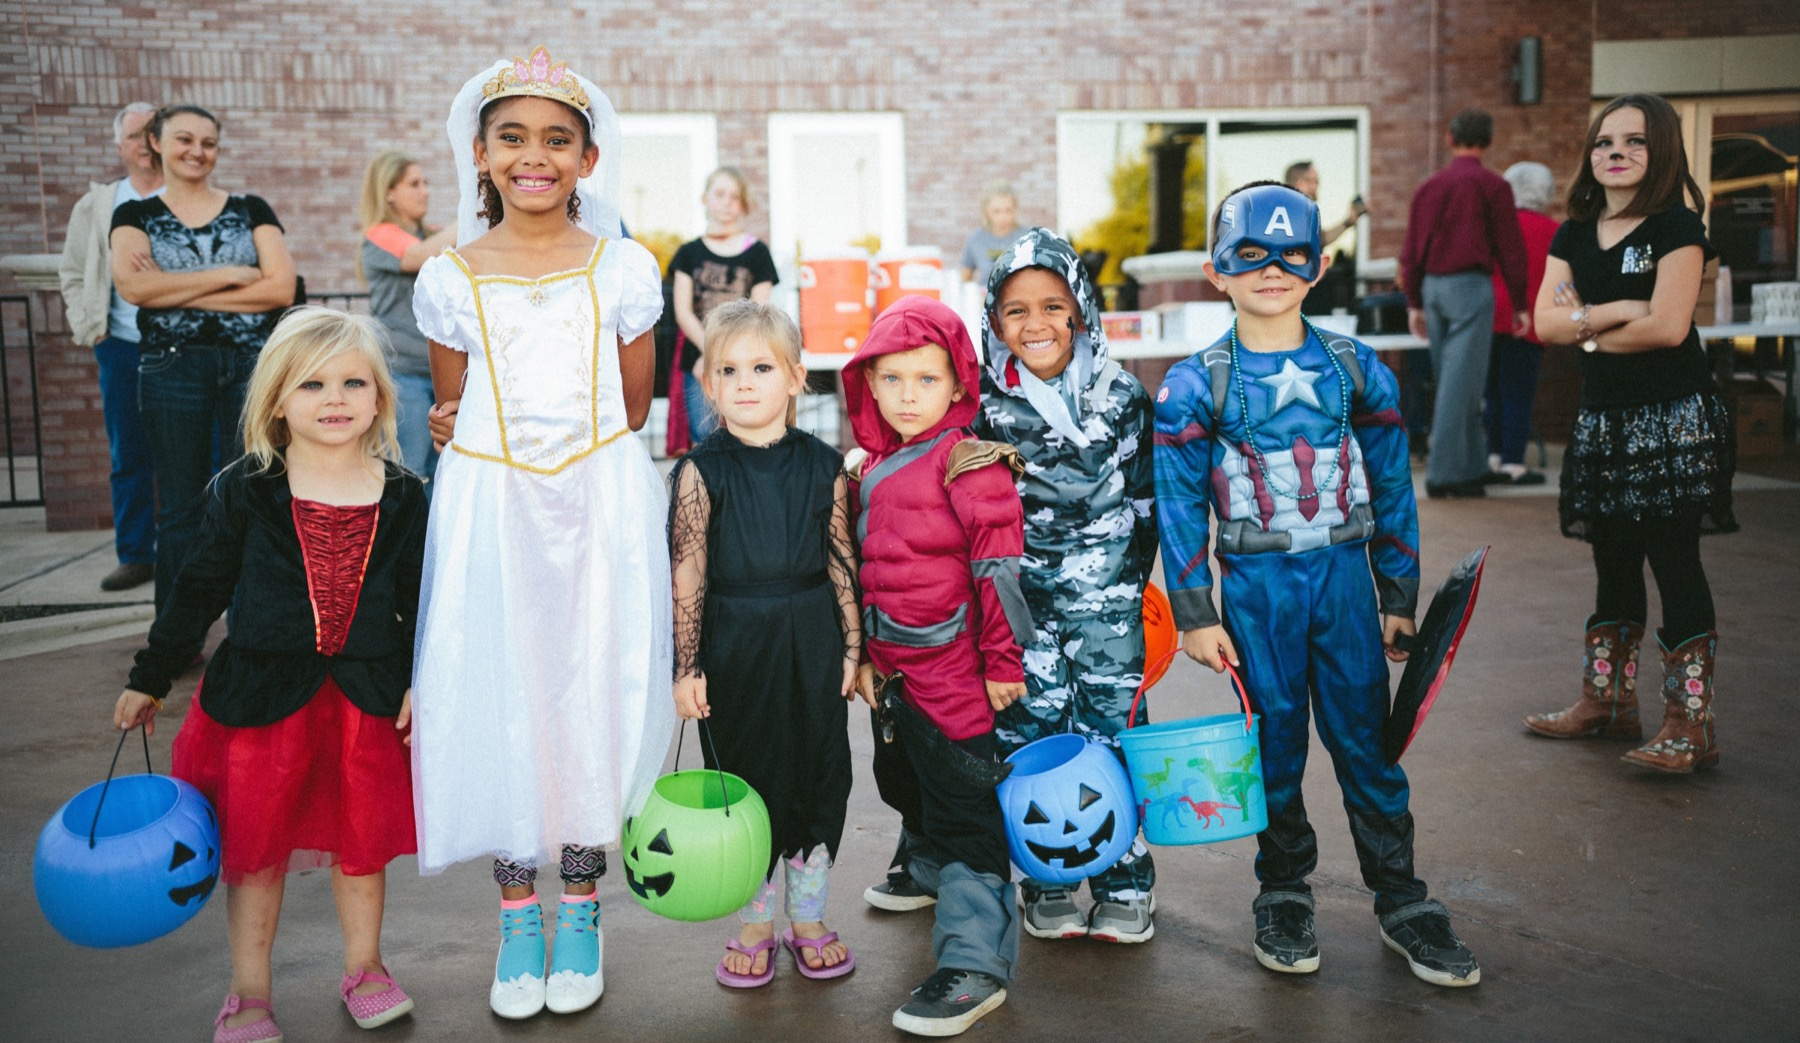 Chicago Il Halloween Events 2020 13 Kid Friendly Halloween Events in Chicago | Choose Chicago